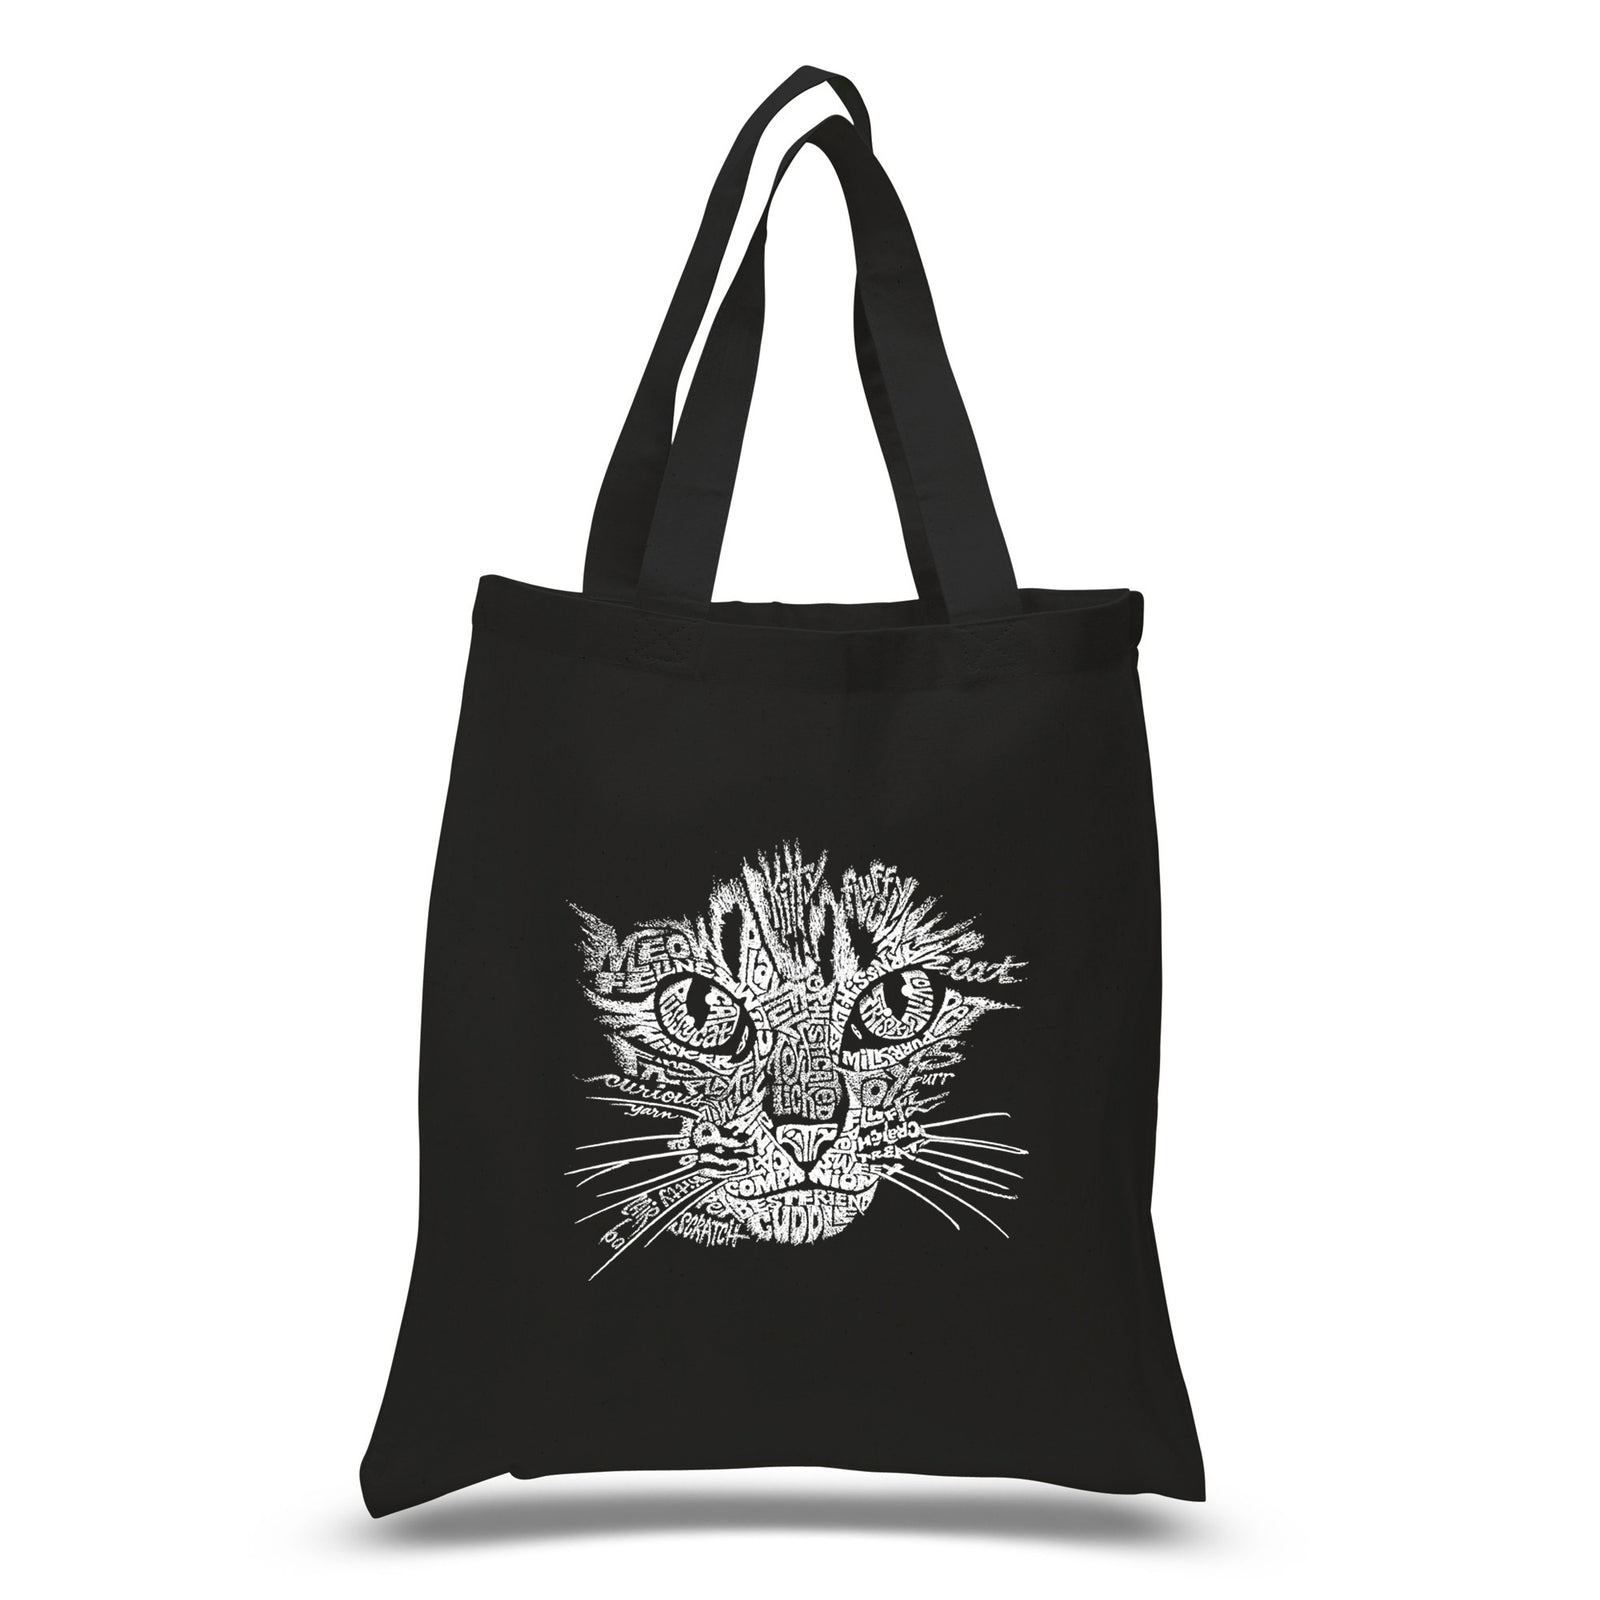 Los Angeles Pop Art Small Tote Bag - Cat Face